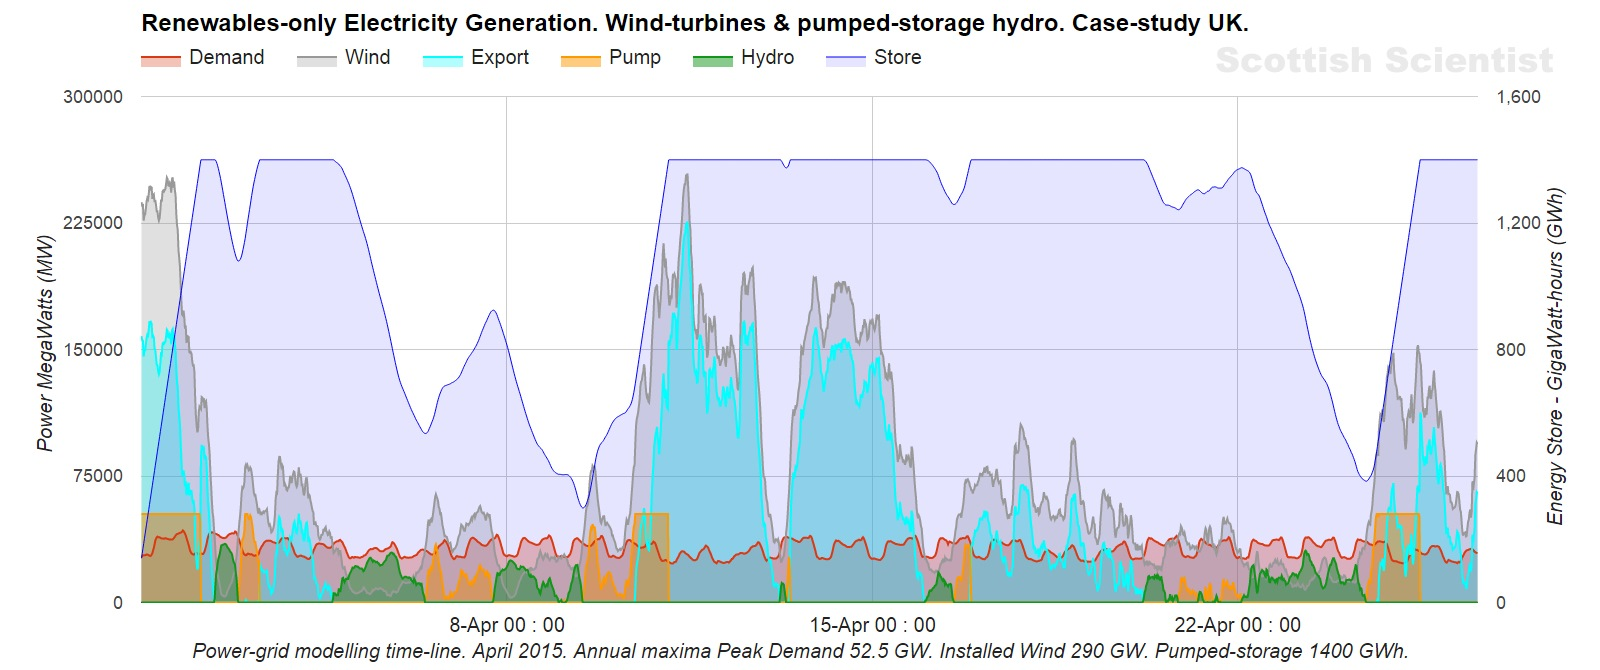 The Loch Ness Monster Of Energy Storage Matters Water Tank Diagrams Hot Tanks Only Busters Addressing Catch 1 Here Is Alternative Model From Ss Beautiful Chart Btw How Did You Make It